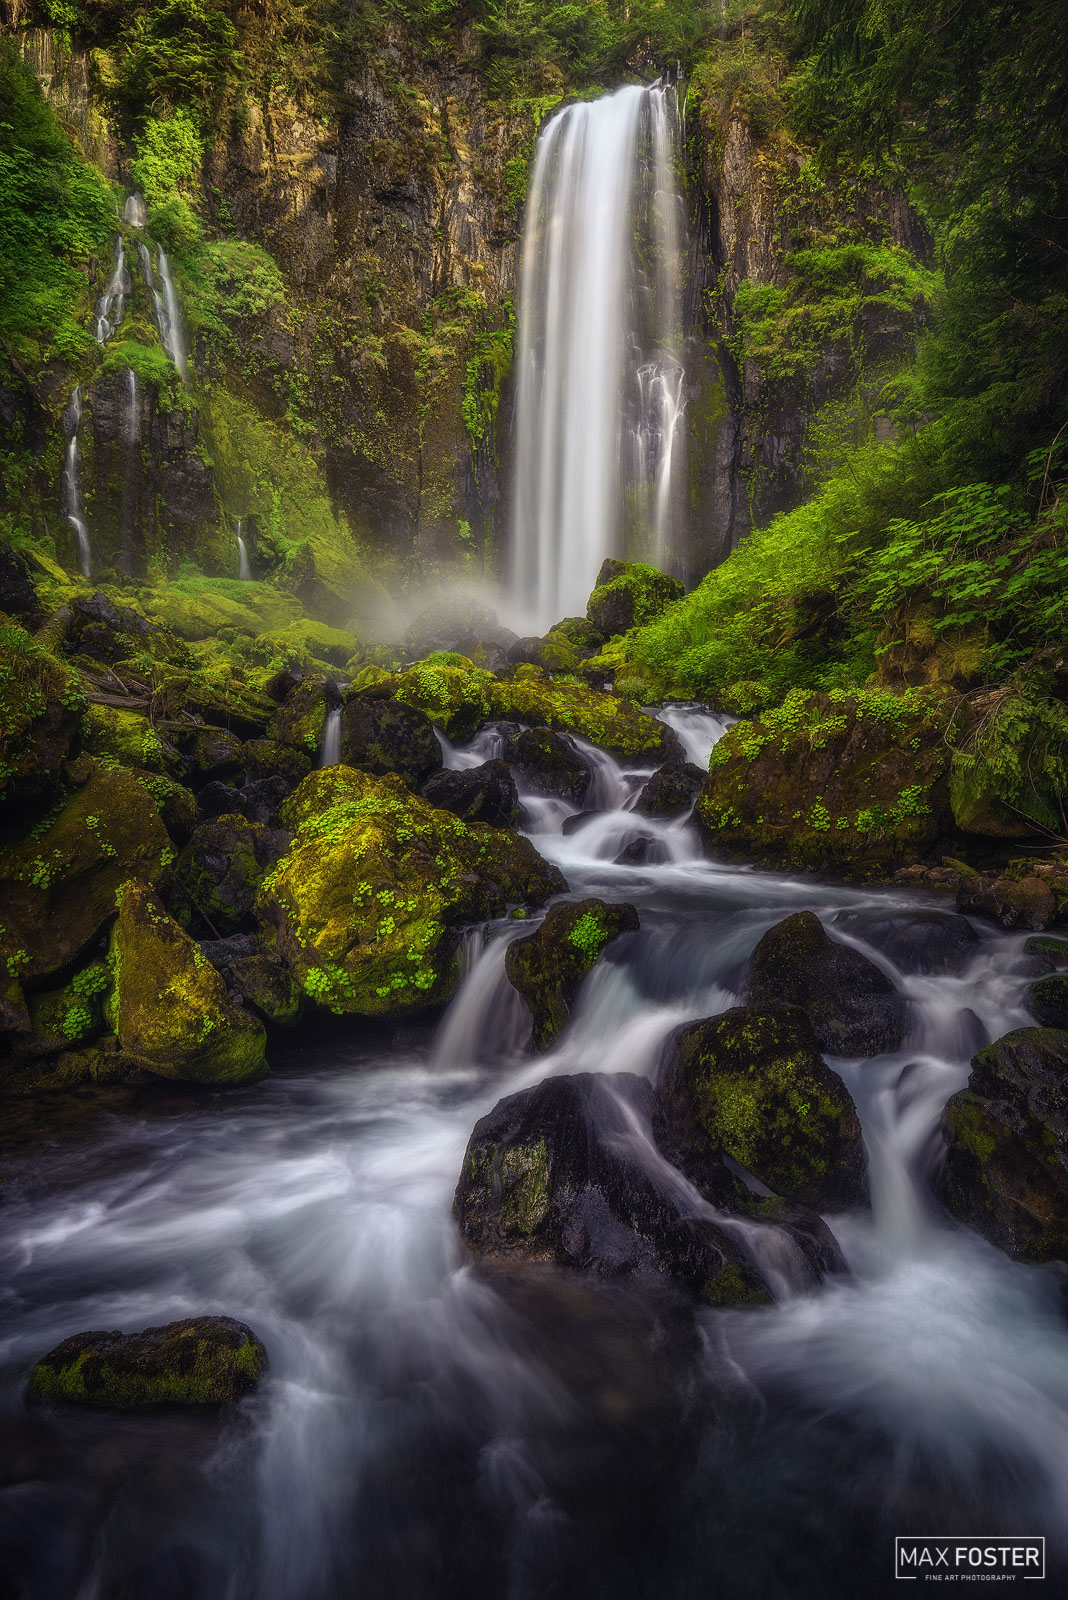 Washington, Jurassic, Waterfall, Downstream, photo